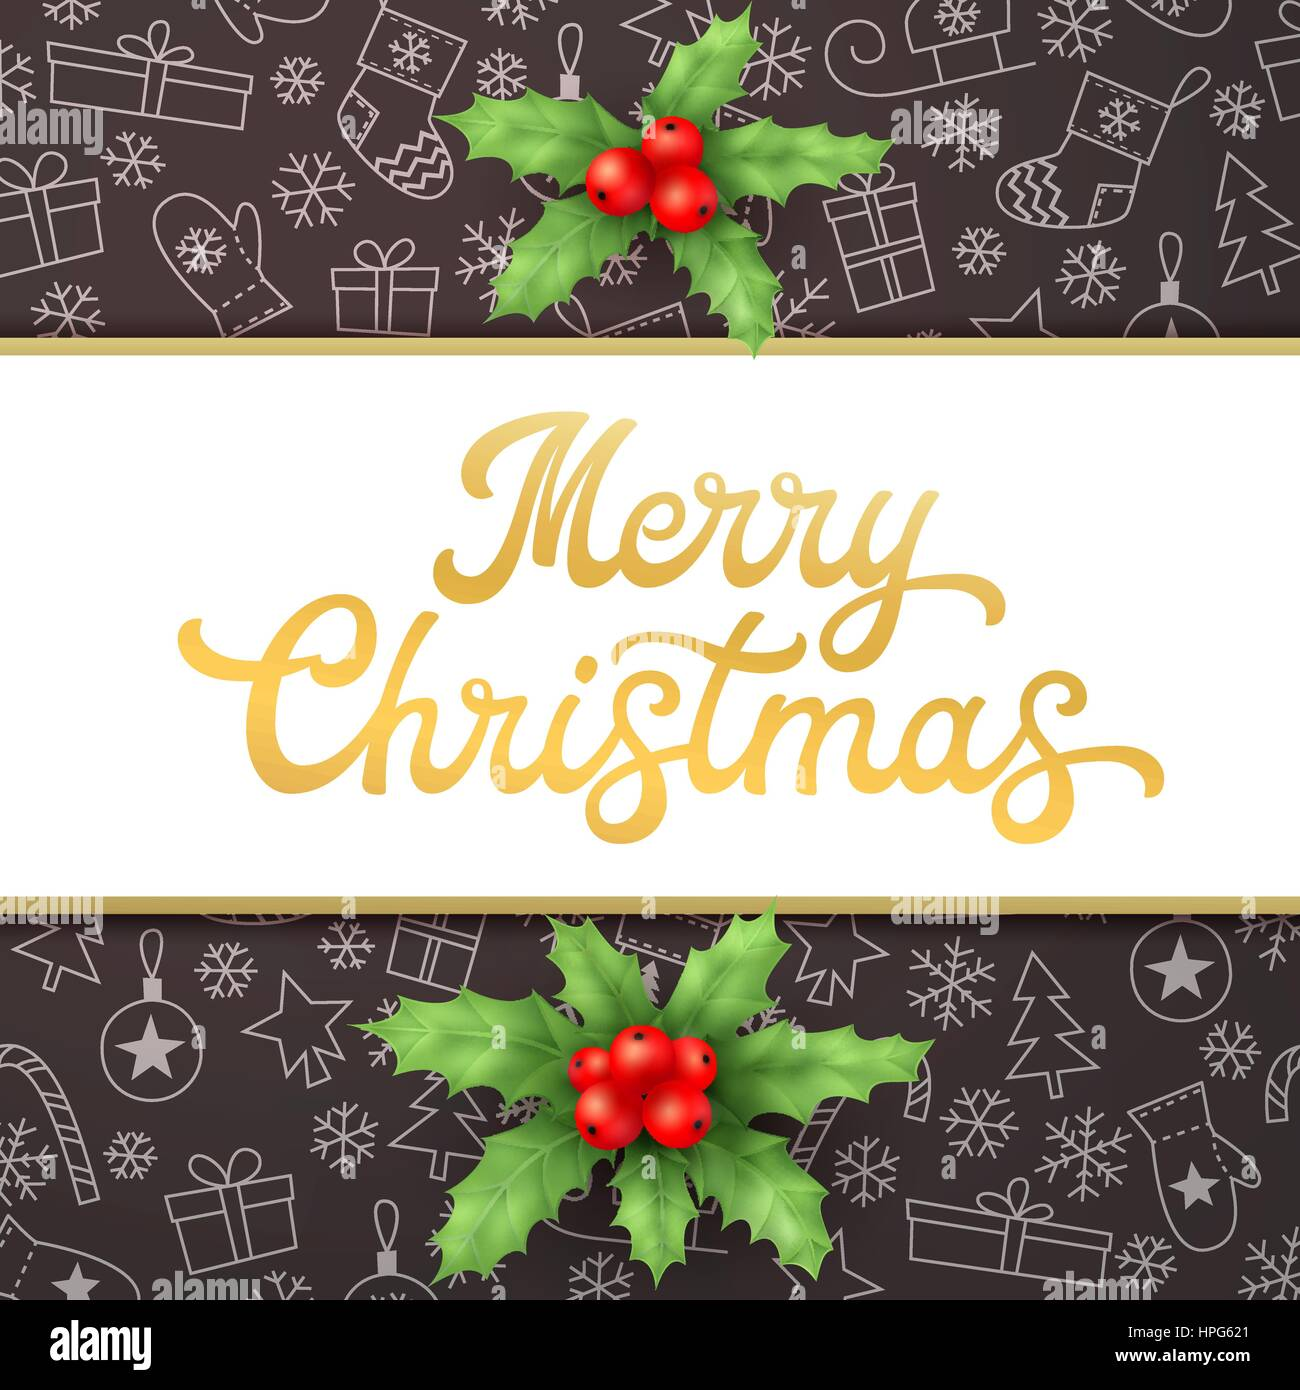 Merry Christmas. Square Xmas card with gold lettering inscription and holly on black background with sleighs, trees, - Stock Image